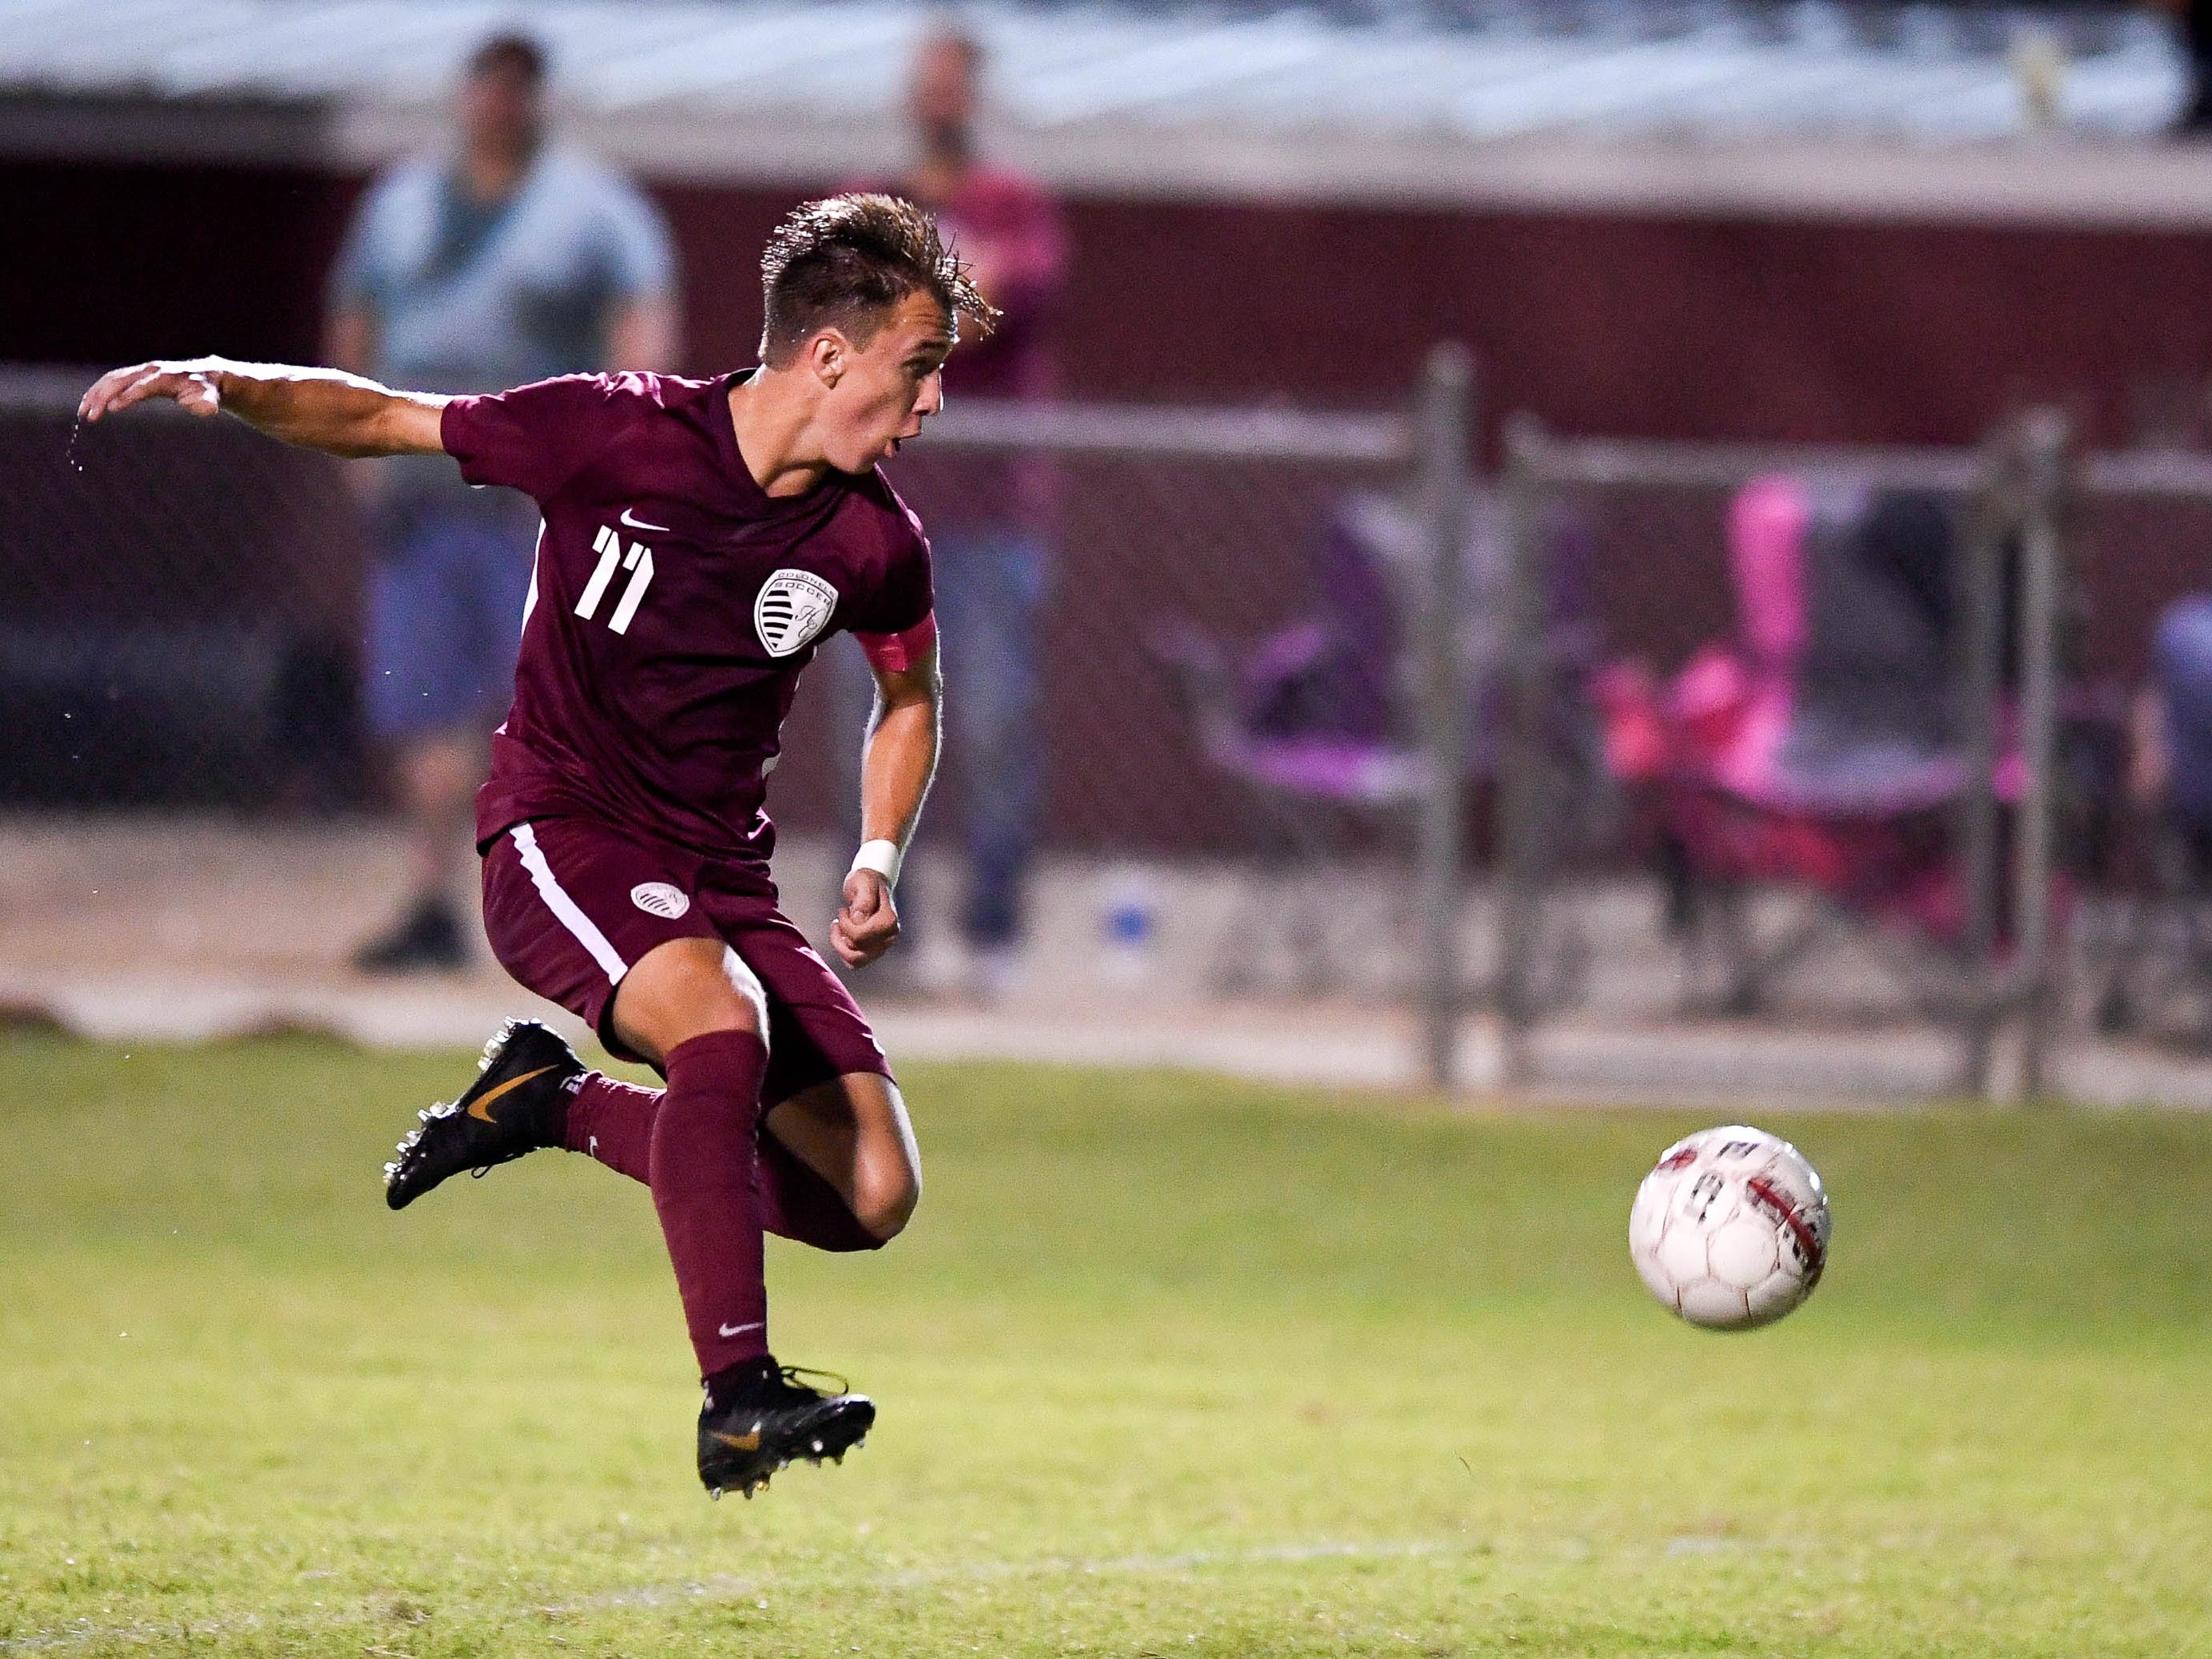 Henderson County's Max Wawrin (11) pushes the ball up field as the Henderson County Colonels play the Webster County Trojans in the Sixth District Soccer Tournament at Colonel Field Wednesday, October 10, 2018.